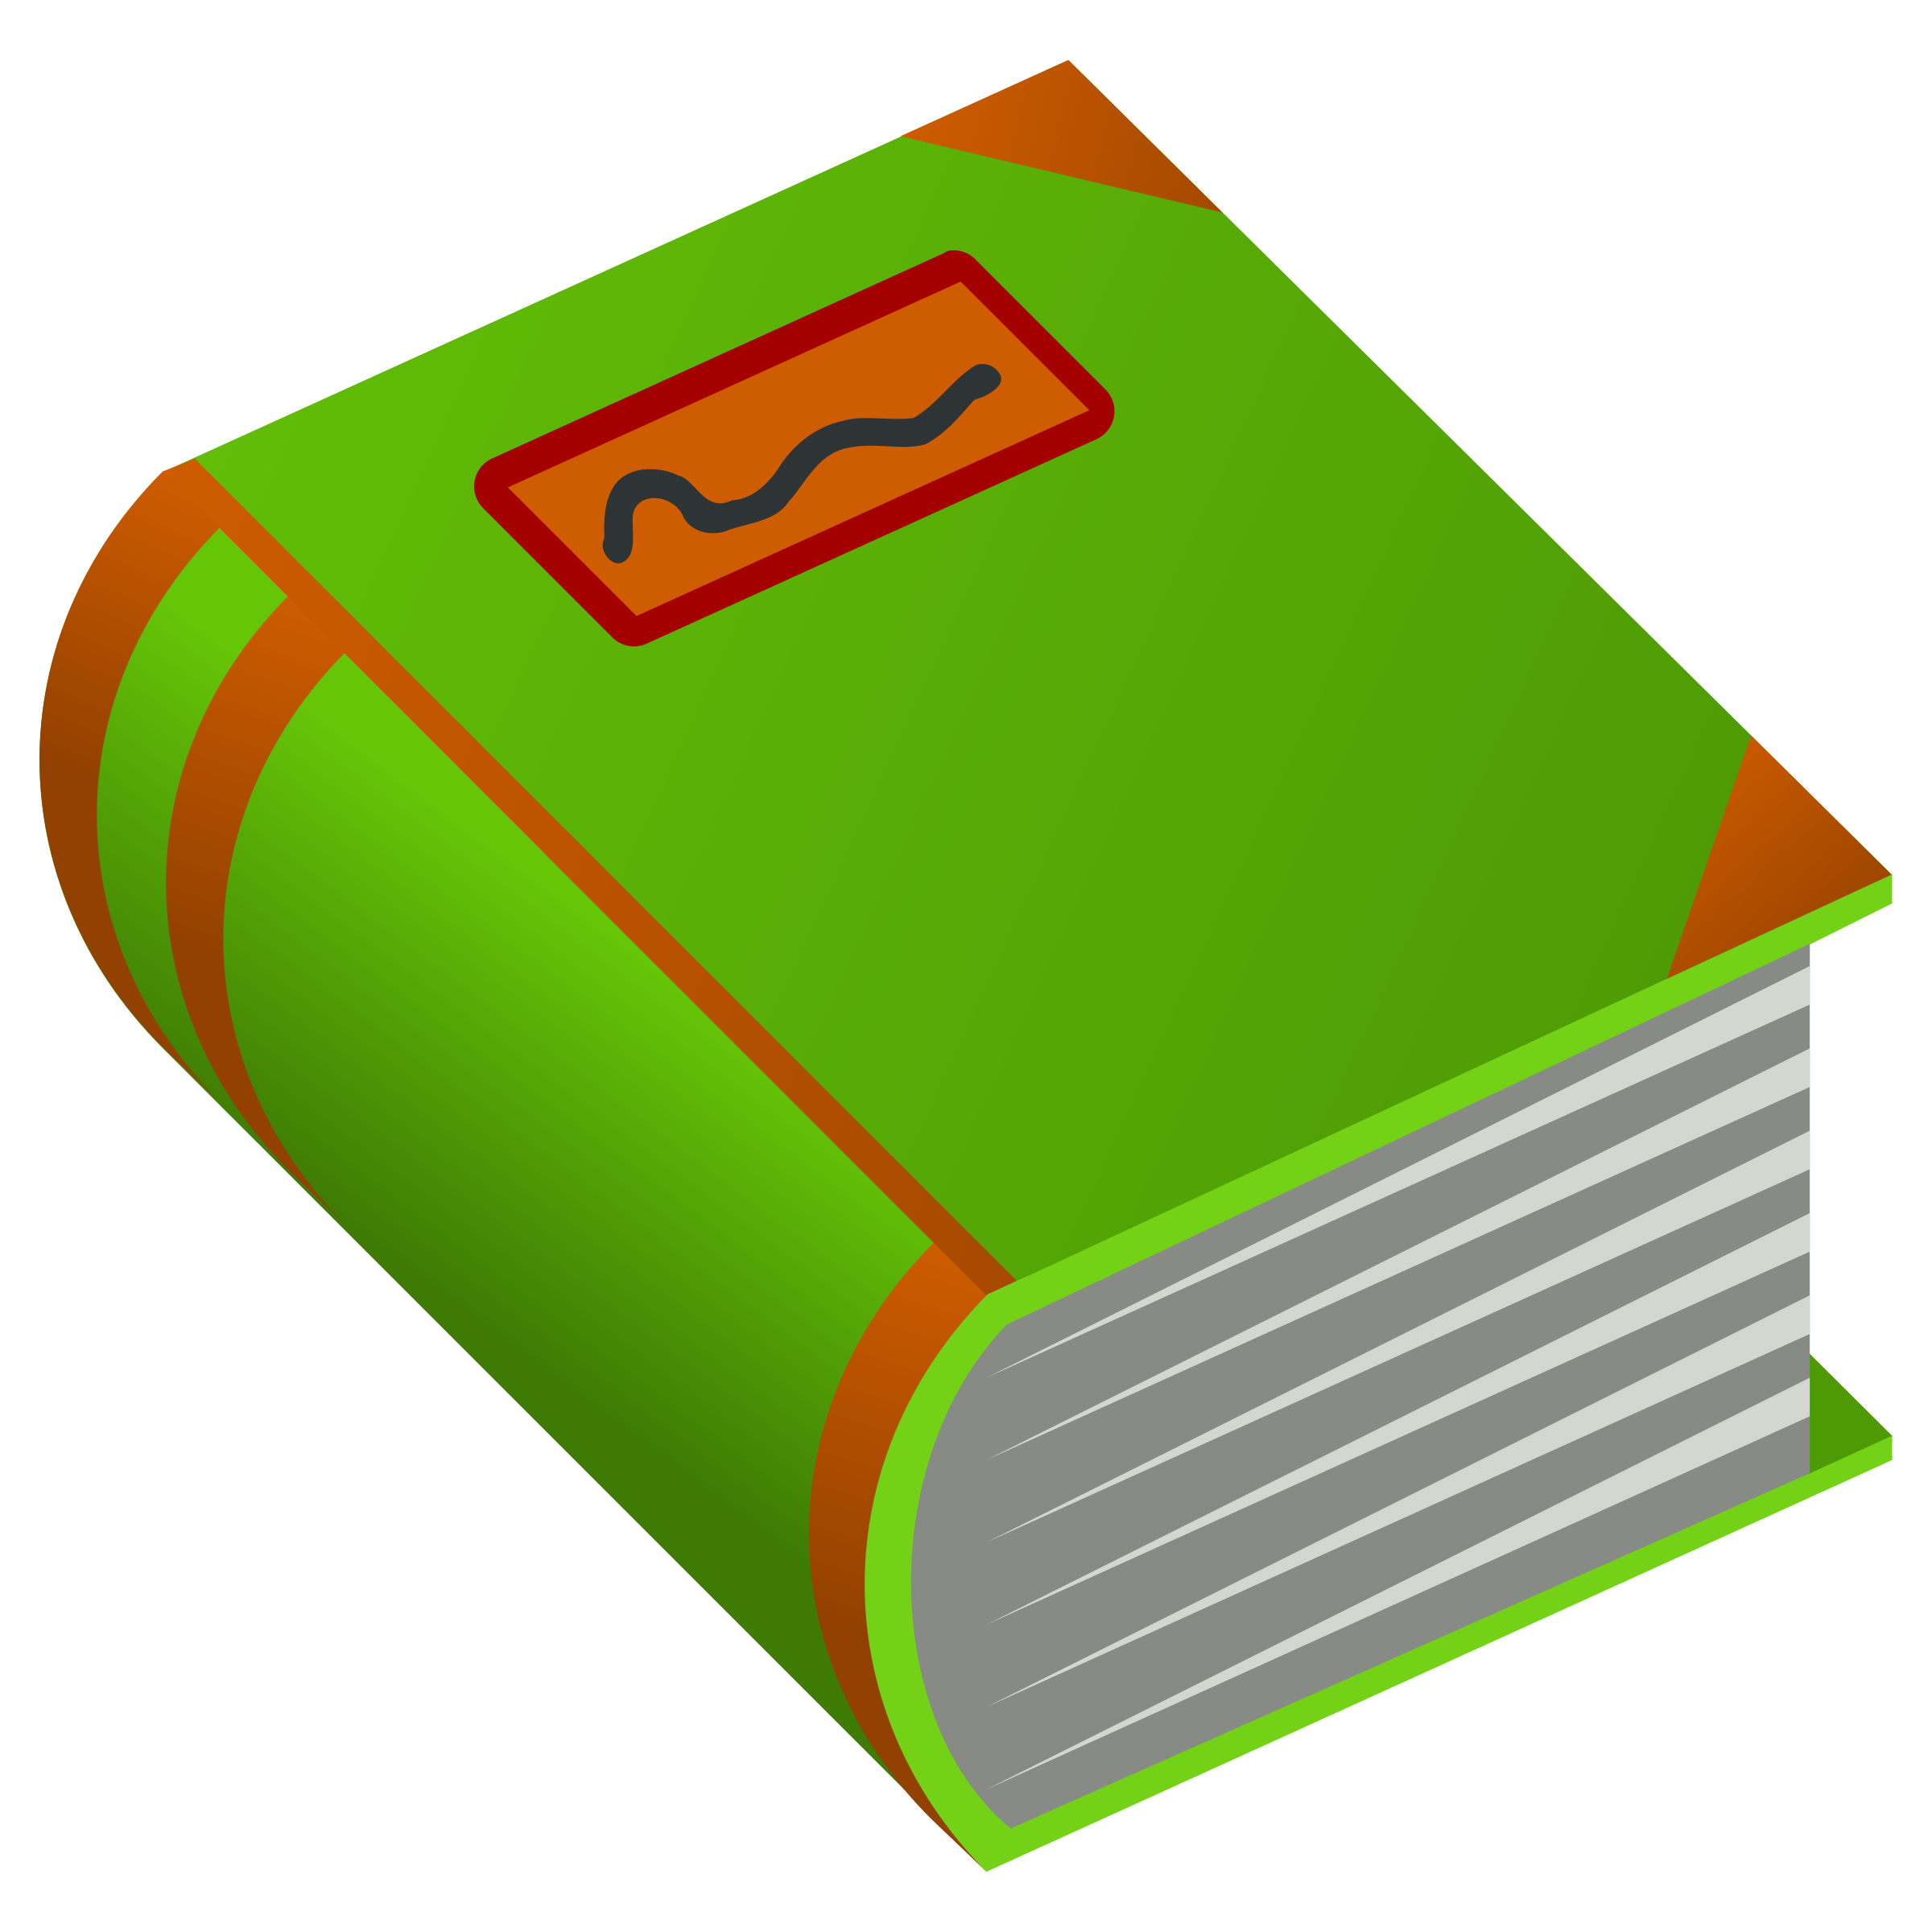 Book big image png. Dollar clipart animated